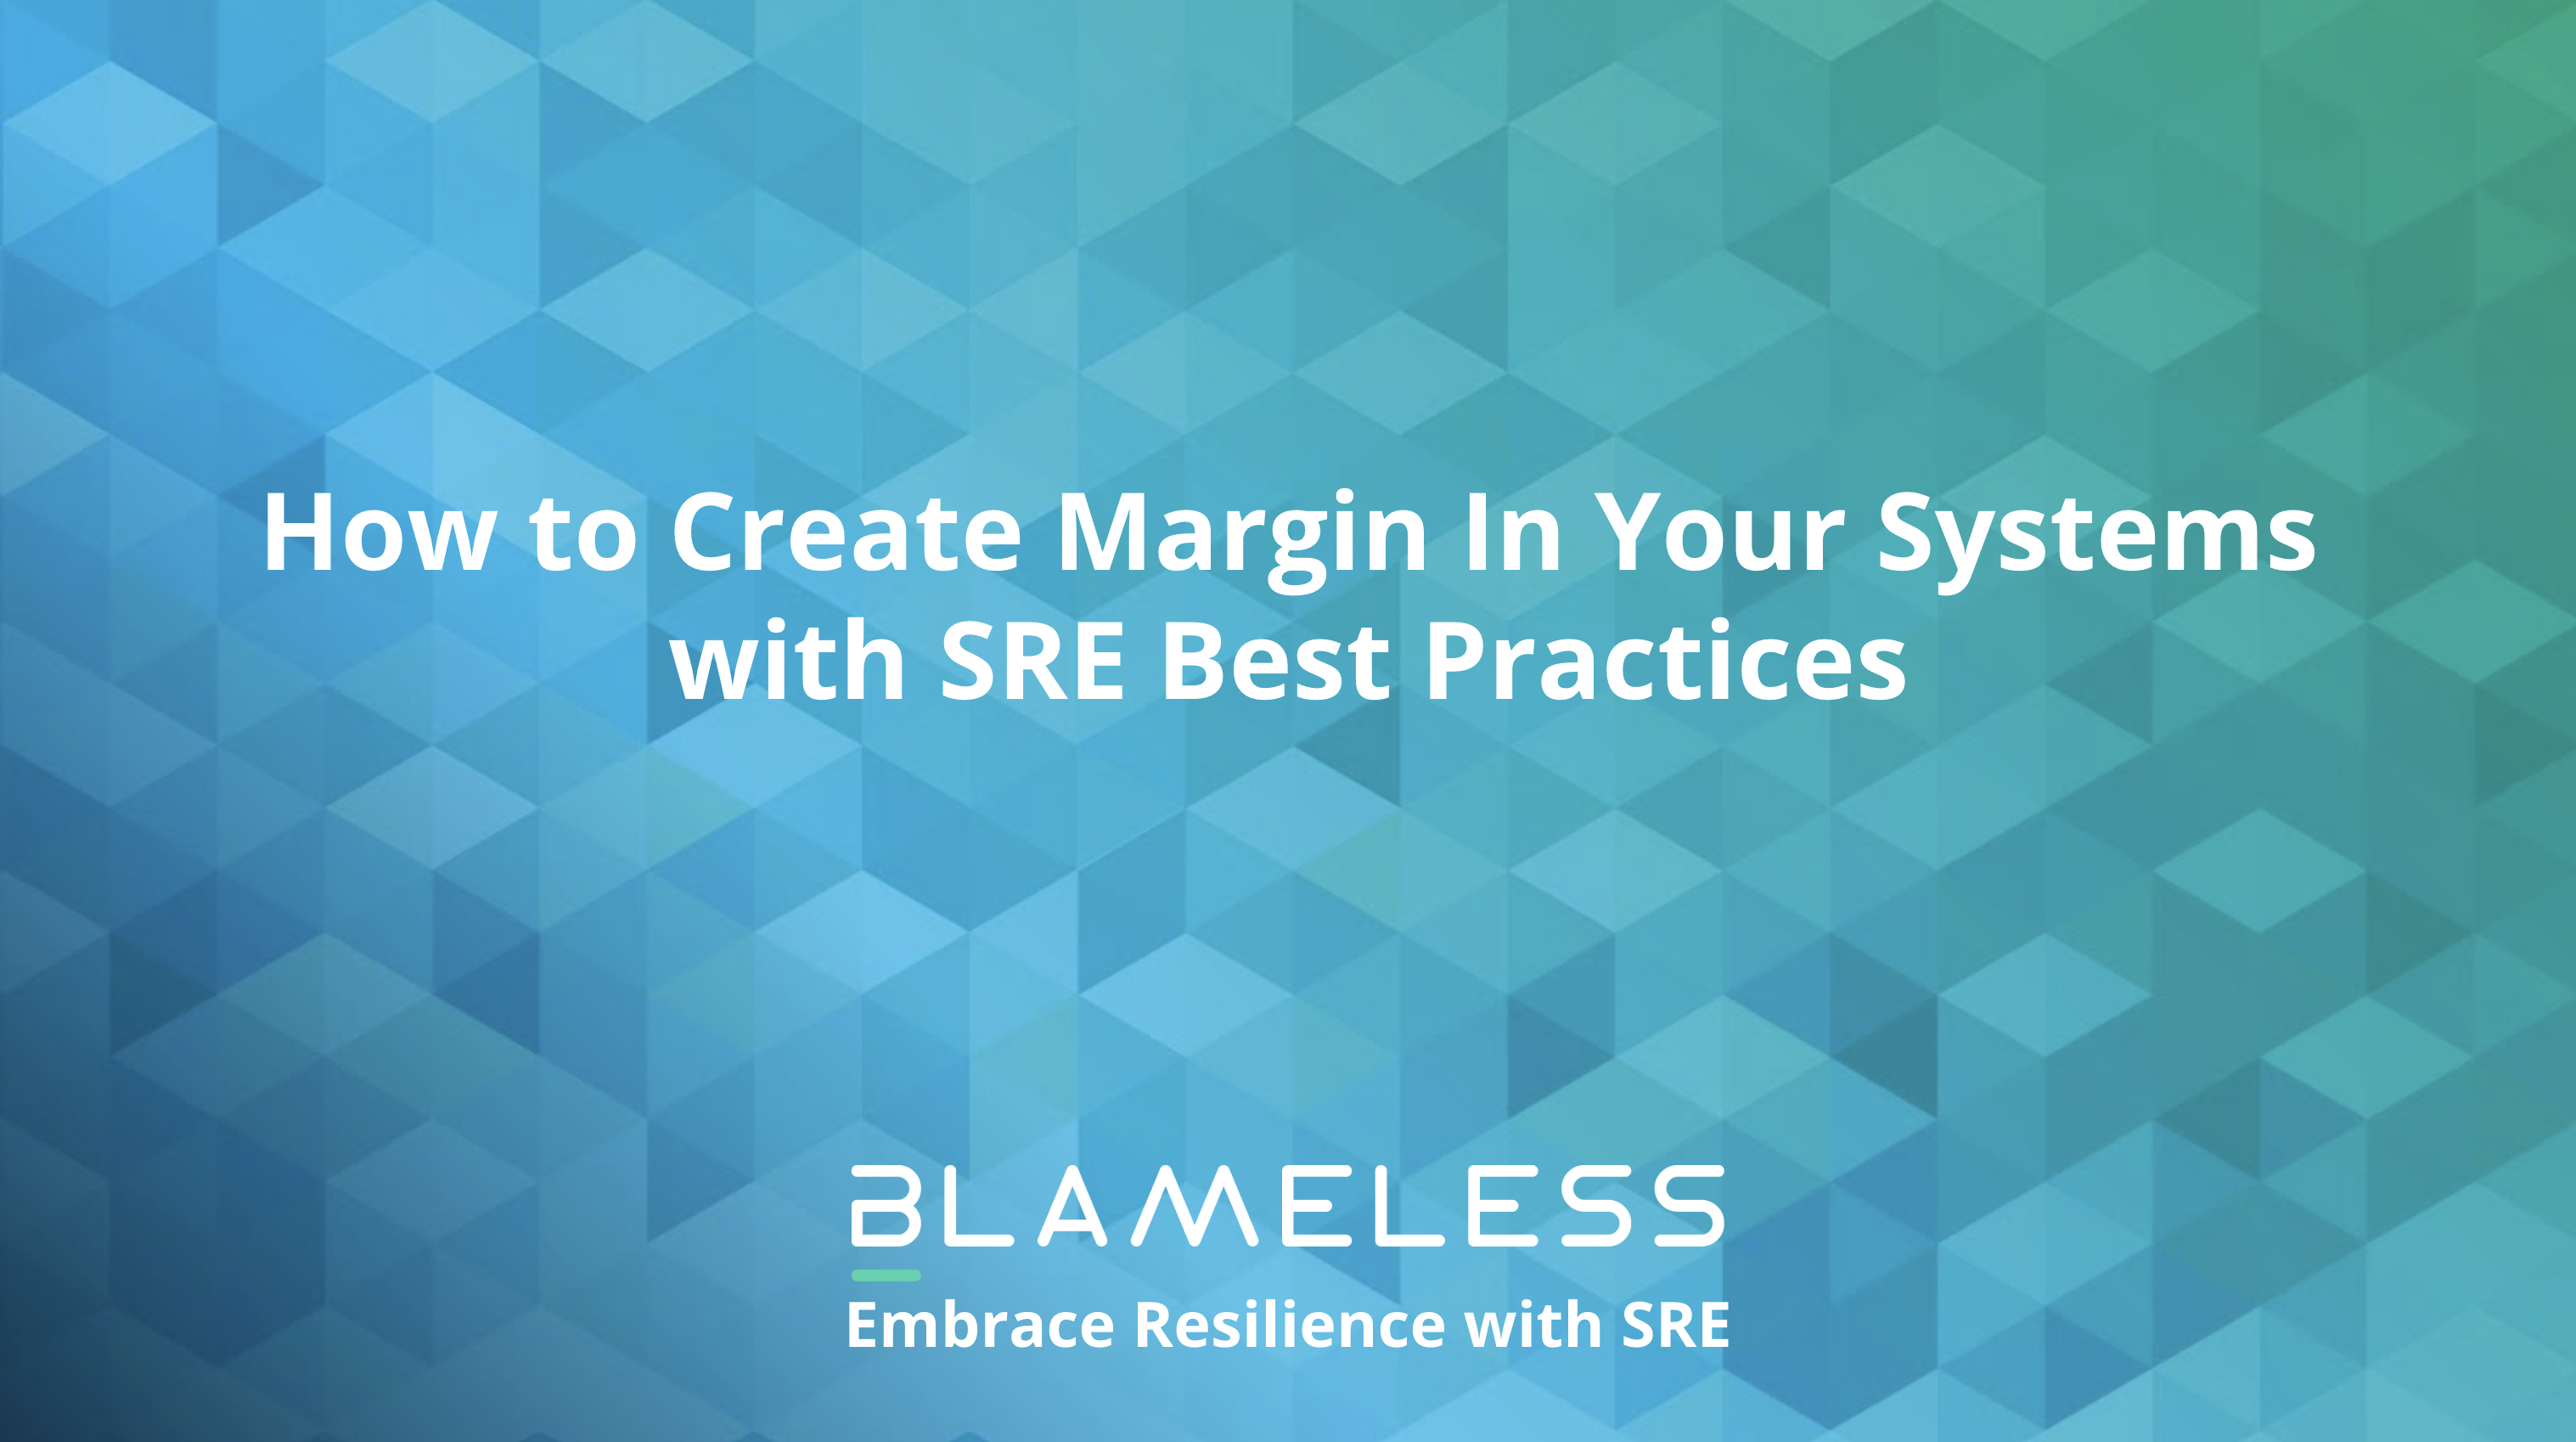 How to Create Margin in your Systems with SRE Best Practices